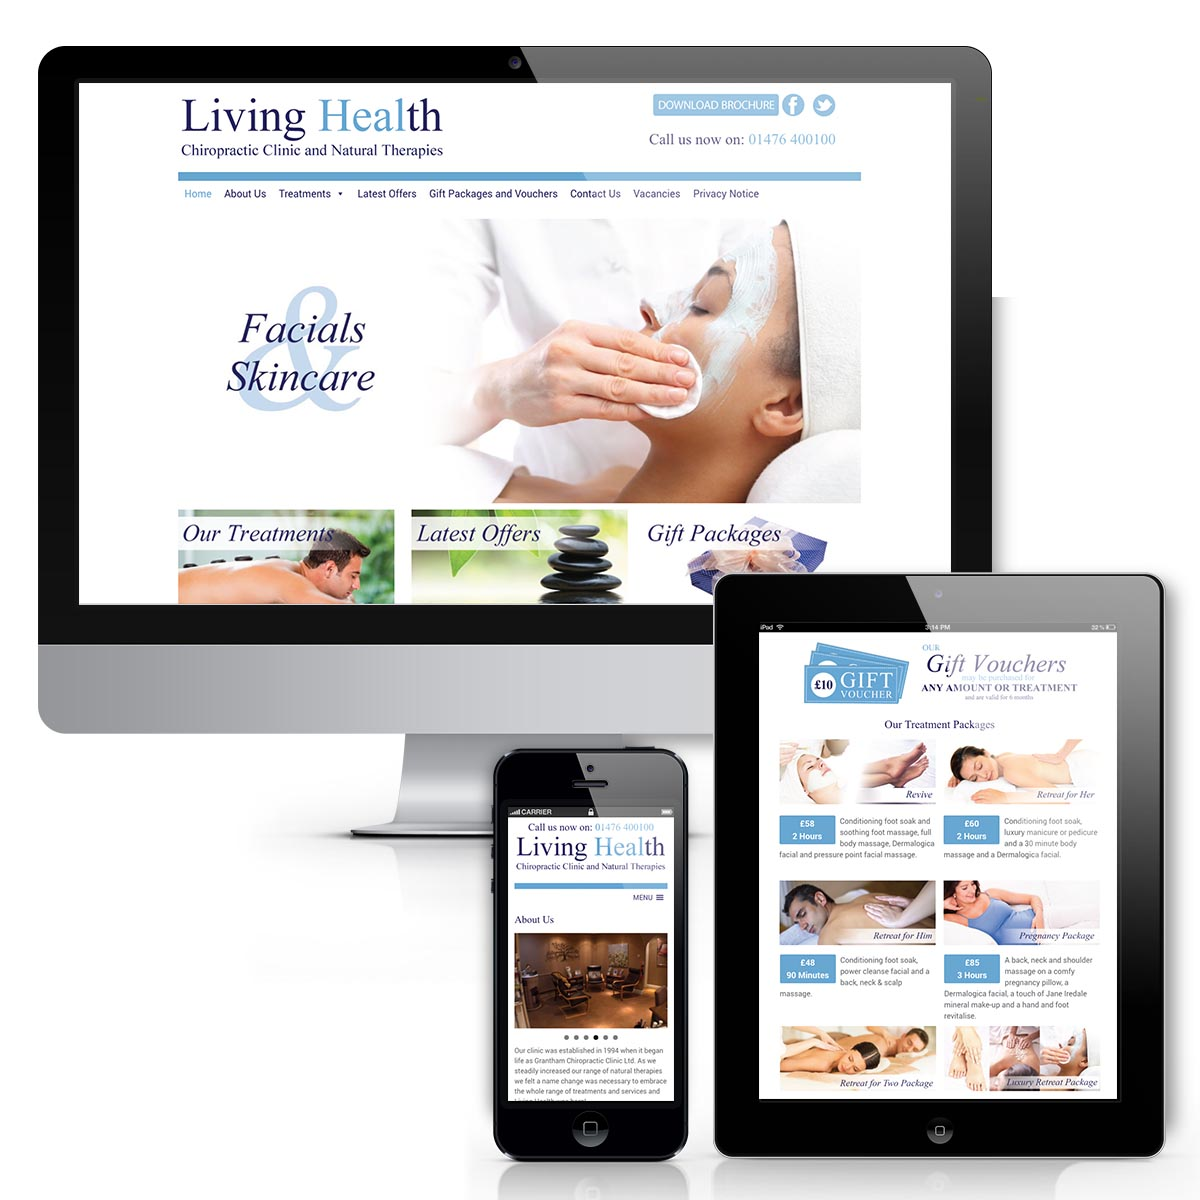 Living Health Website design